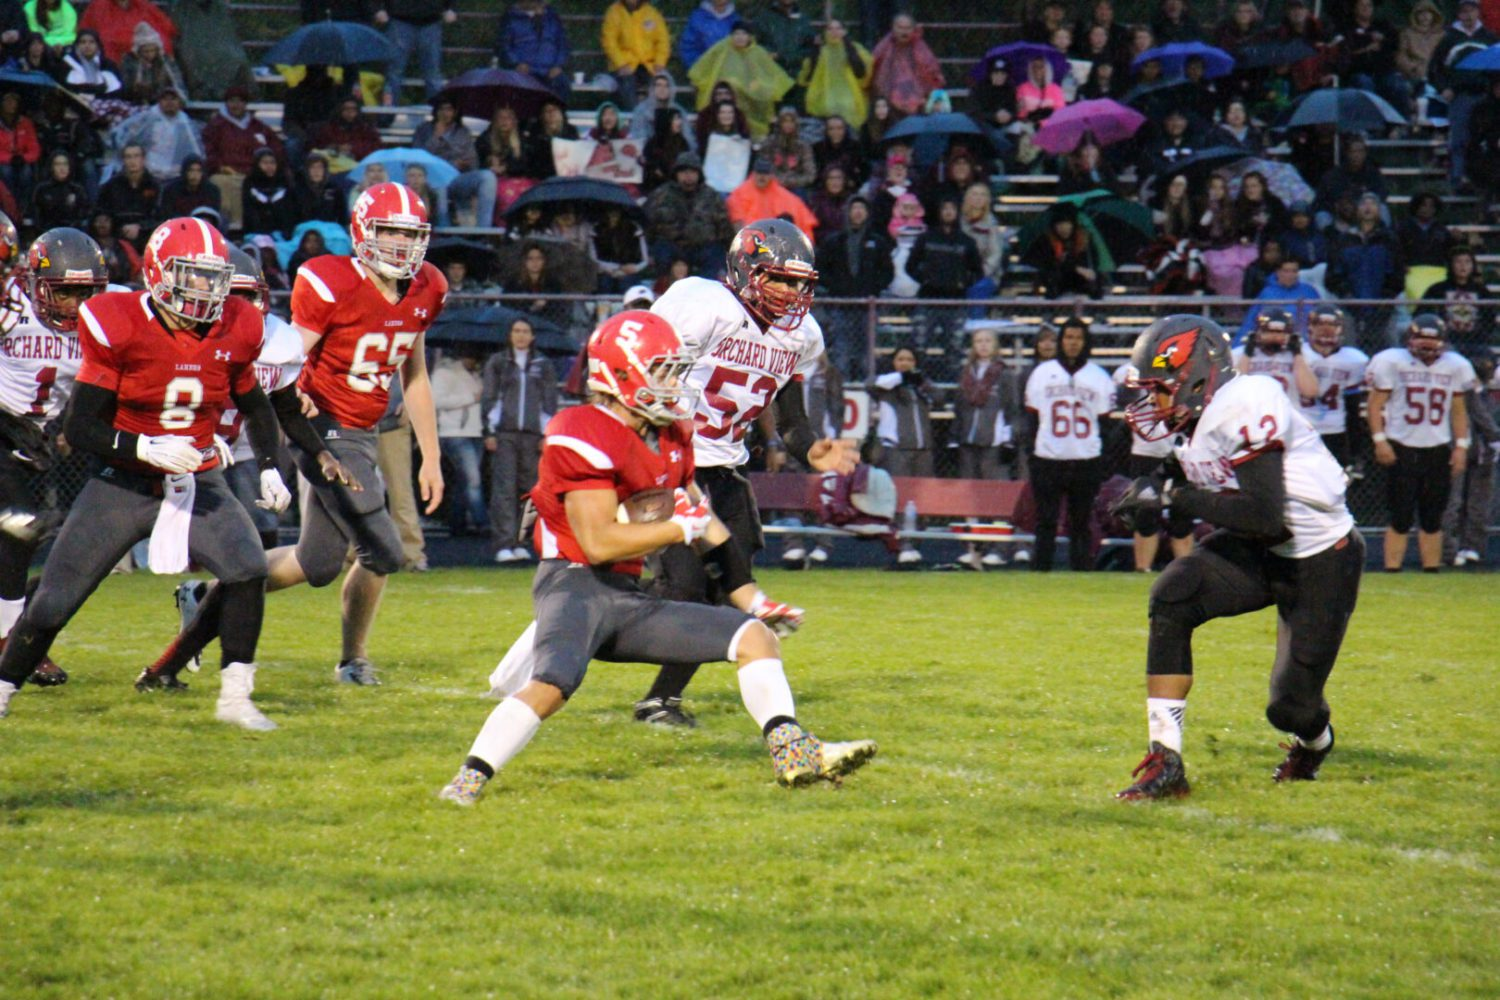 Spring Lake attacks early en route to 55-22 win against Orchard View